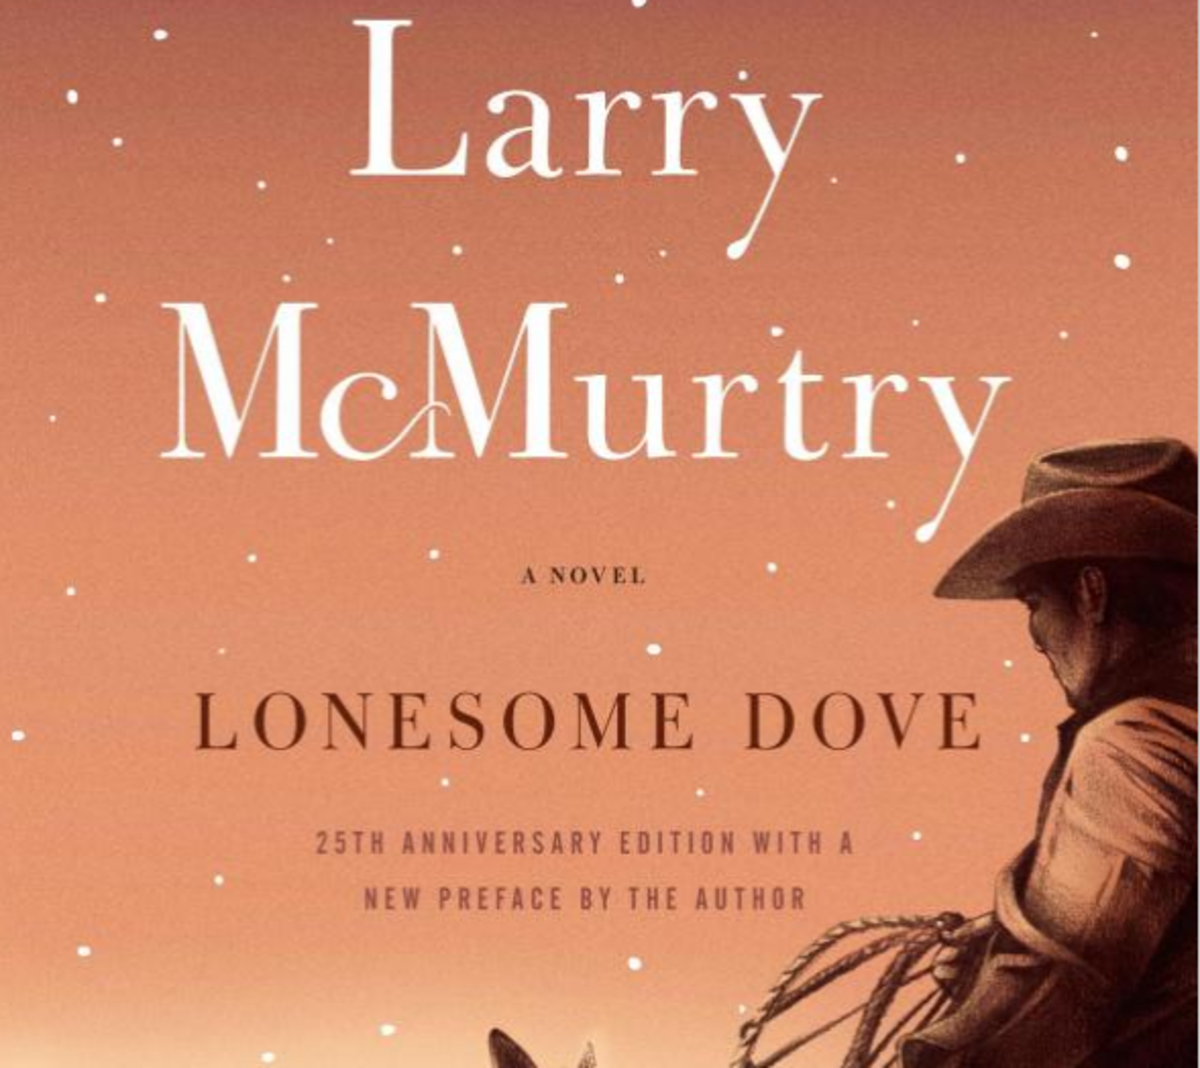 True heroism, betrayal, and the quality of writing set the Lonesome Dove in a category with some of the best western novels of all time.